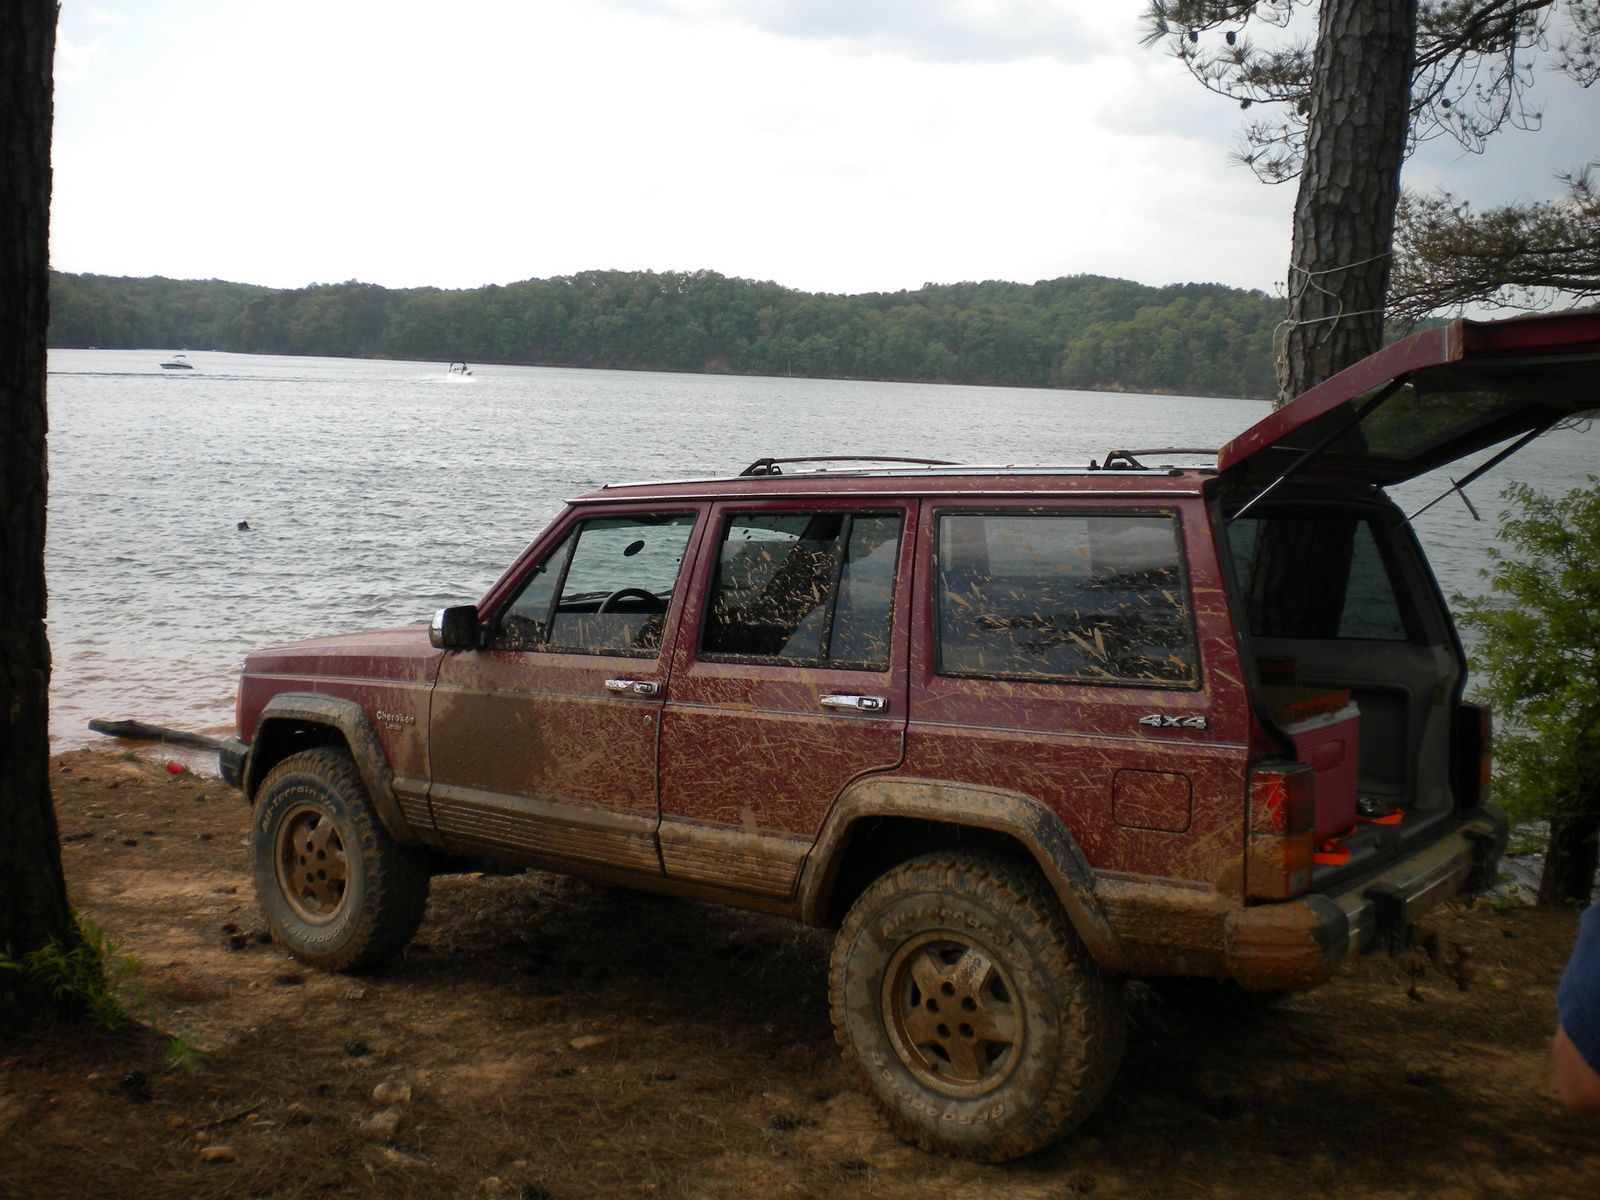 1989 Jeep Cherokee - I once saw one in traffic with a for sale note on its rear window and wow, the impulse was big to find out more.